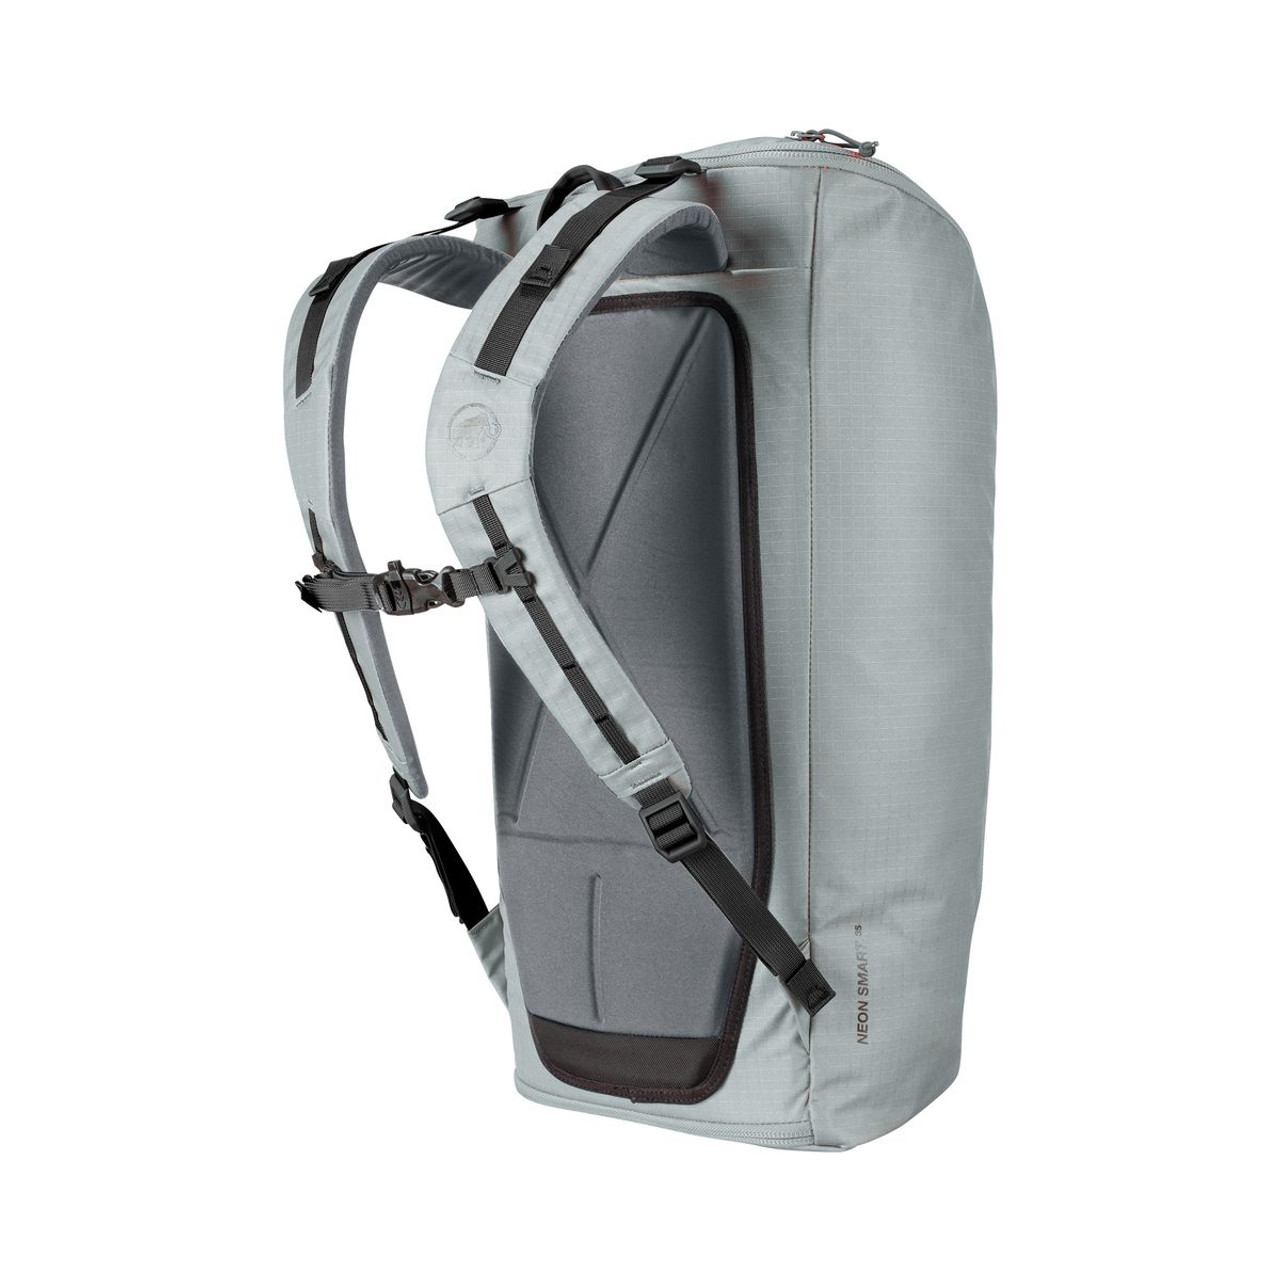 Mammut Neon Smart 35L - Back - Mountain Mail Order South Africa - Granit